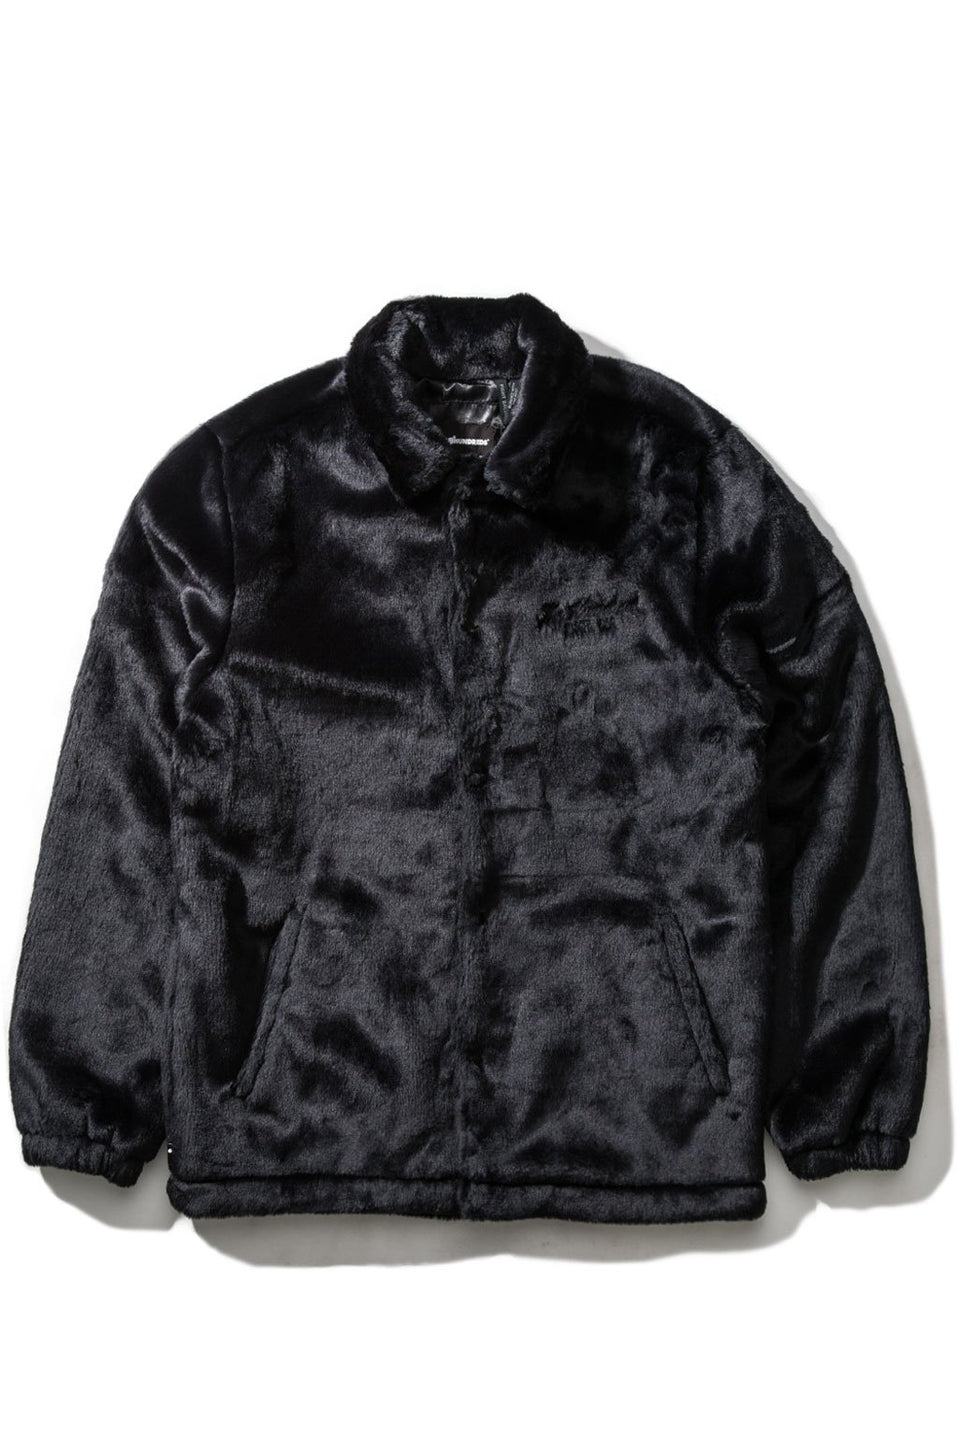 Lucas Coach's Jacket